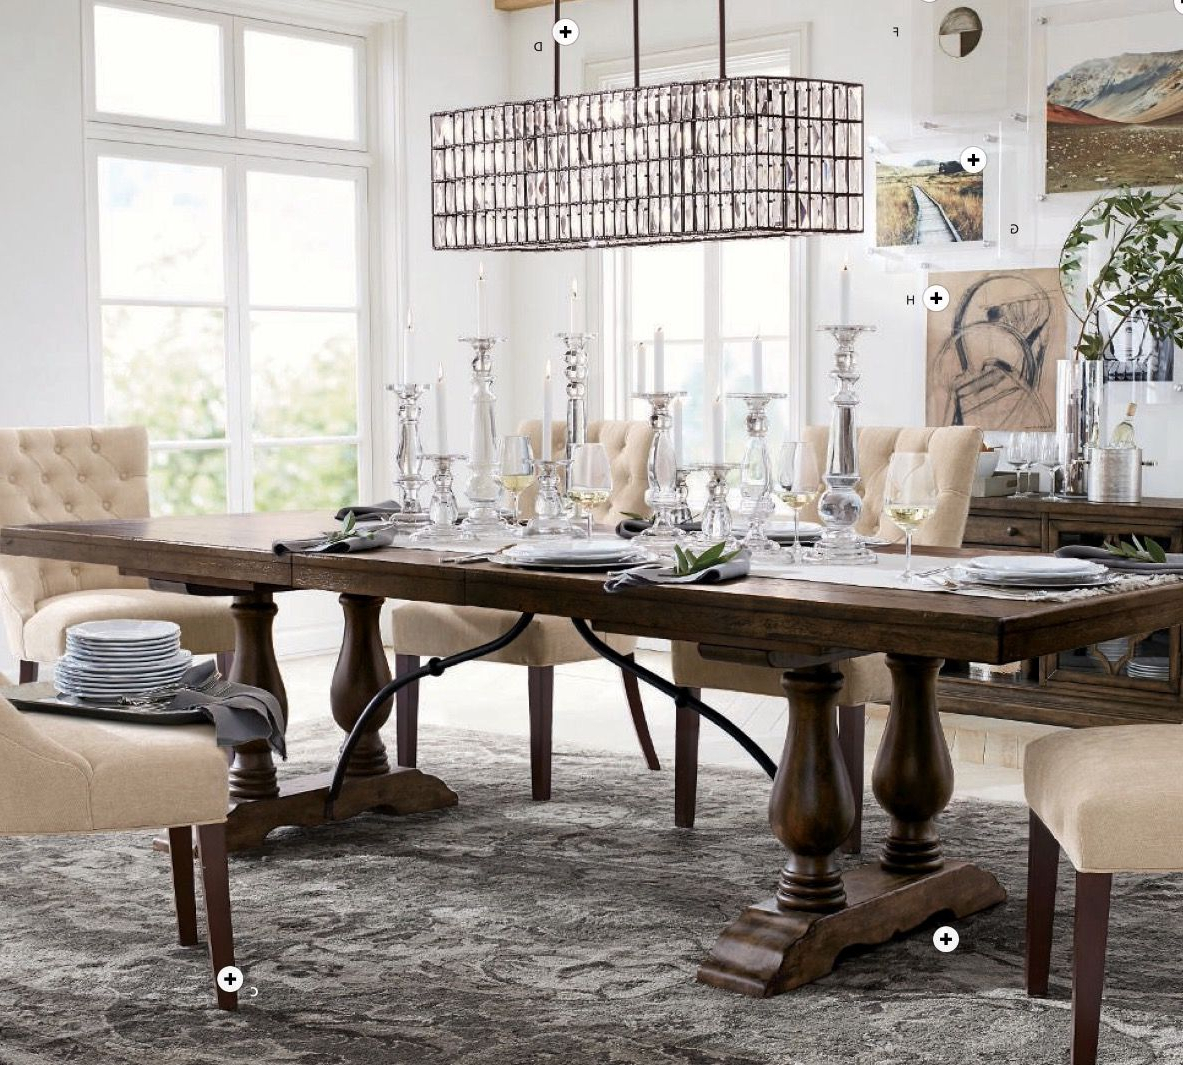 Hewn Oak Lorraine Extending Dining Tables Within Trendy Lorraine Dining Table In Hewn Oak, Hayes Tufted Chairs In (View 9 of 25)